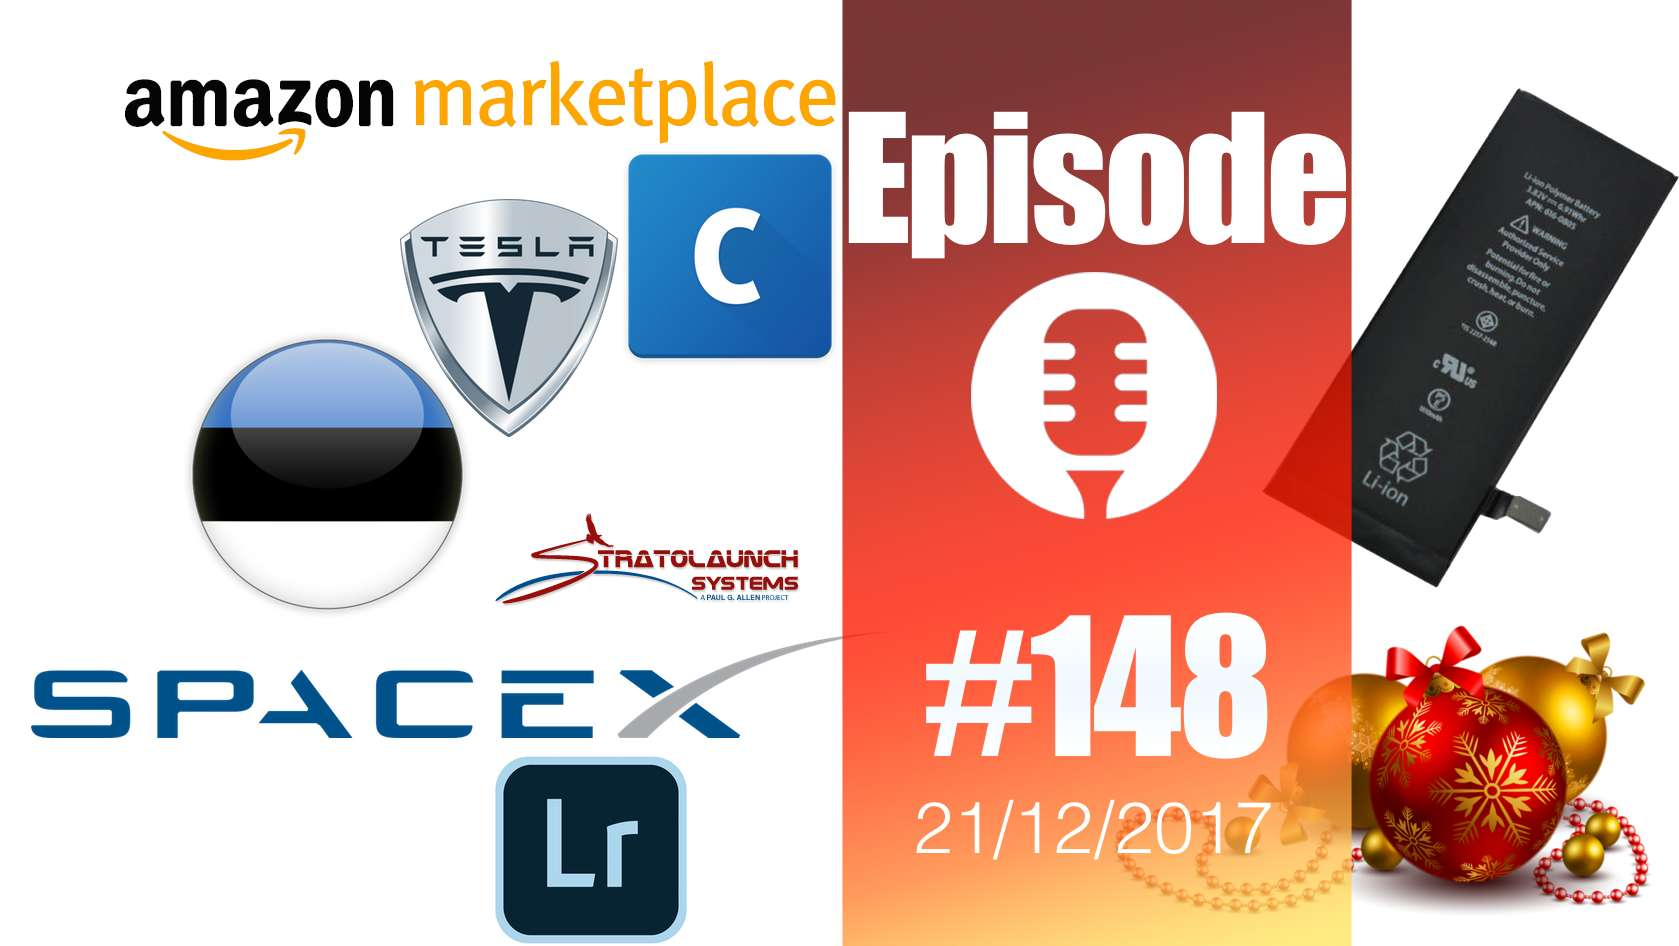 #148: Estcoin, Coinbase, Amazon Marketplace, Lightroom, SpaceX, Stratolaunch, Tesla,… Wonder Woman !